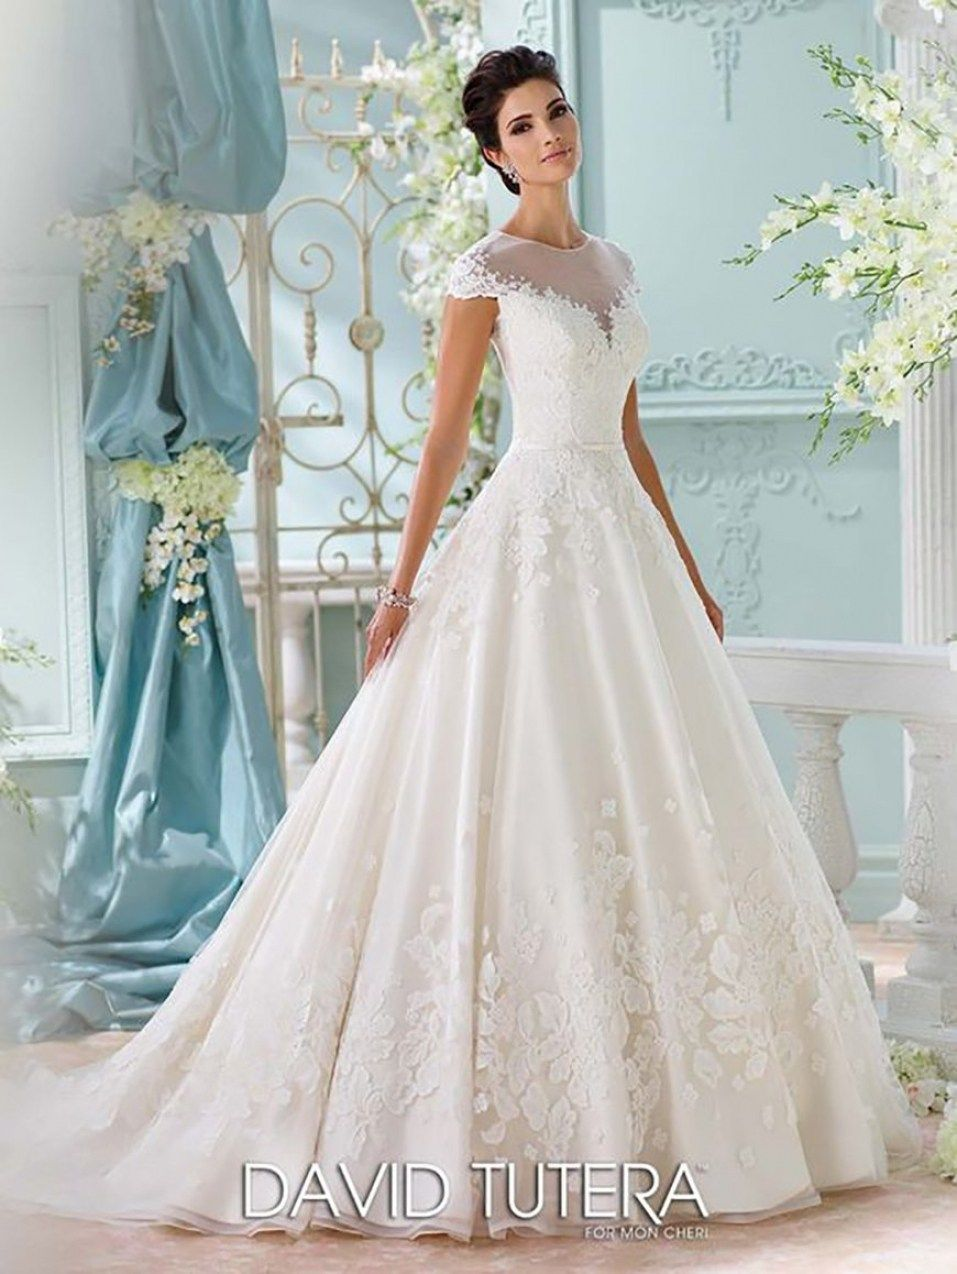 32 Beautiful Winter Wonderland Wedding Dresses | Pinterest